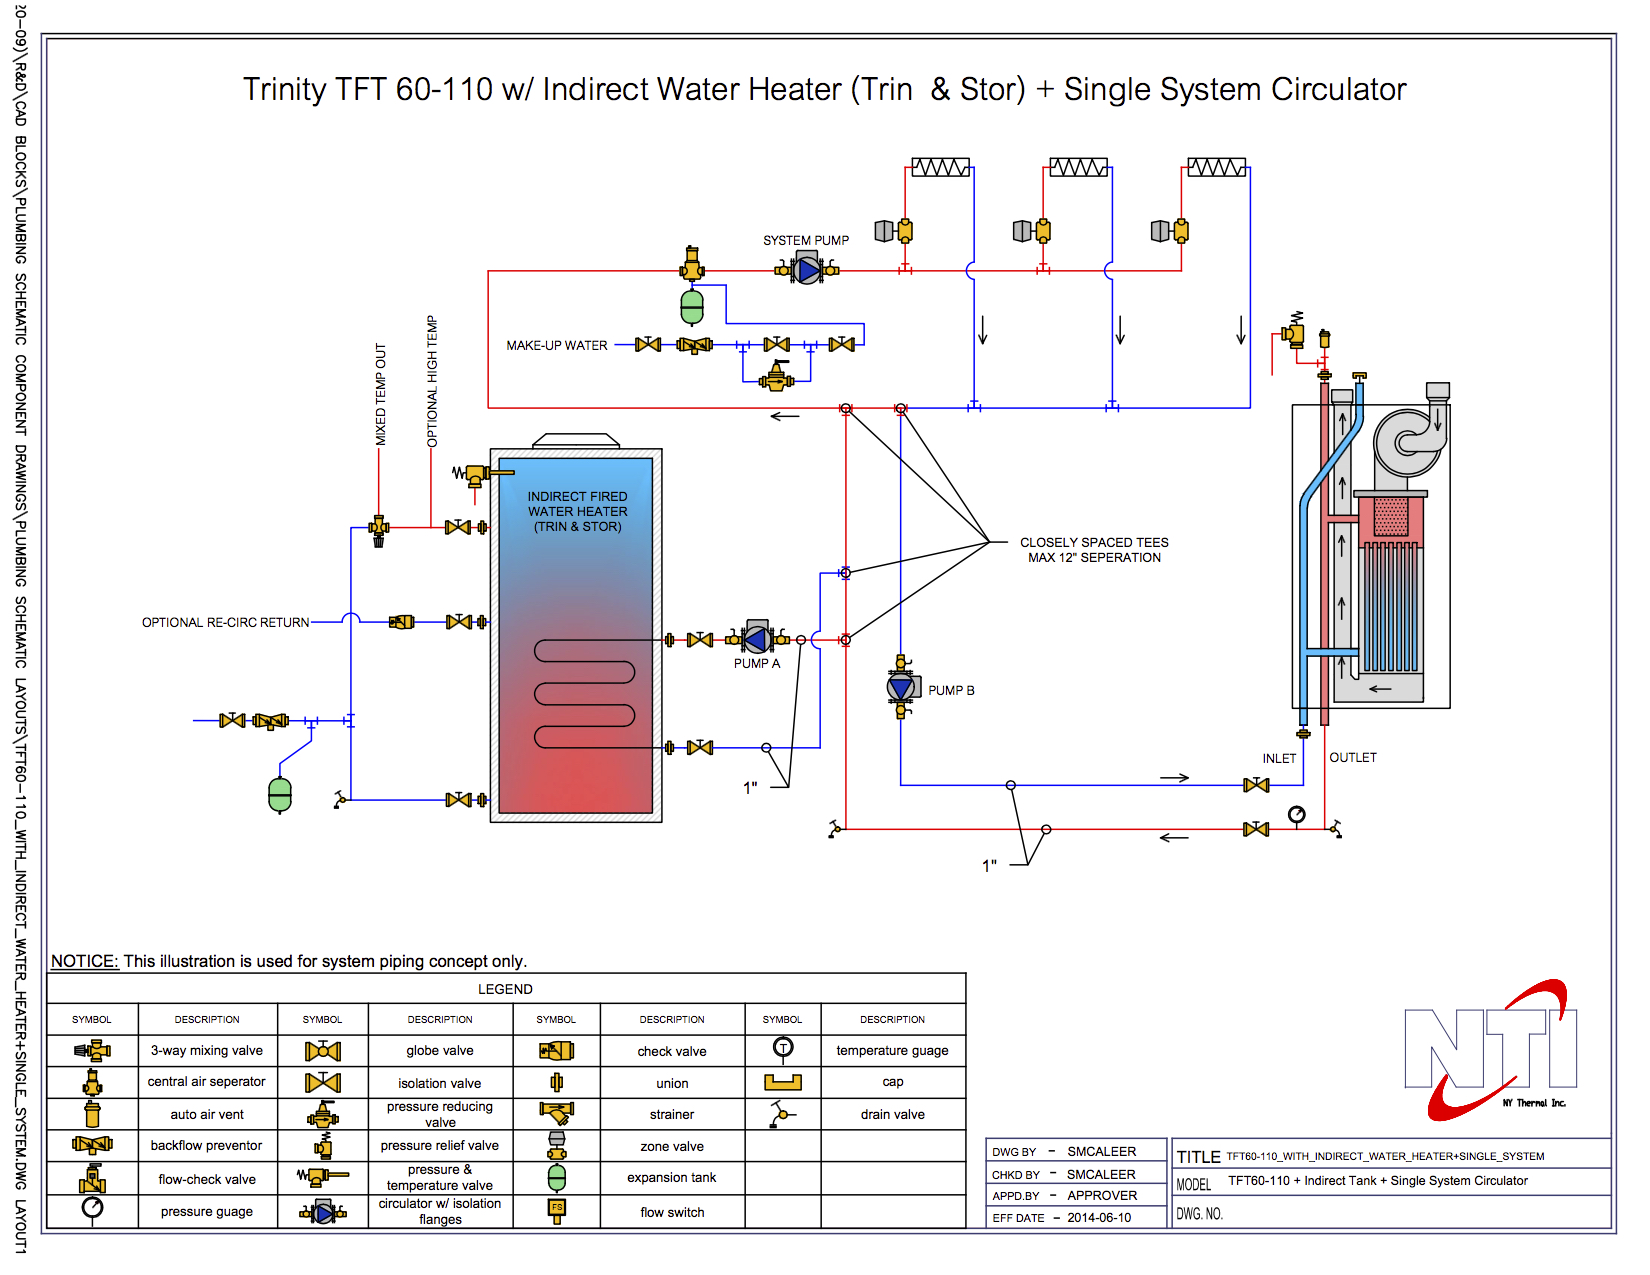 hight resolution of utilizing boilers for water heating able distributors water heater system diagram indirect water heater piping diagram